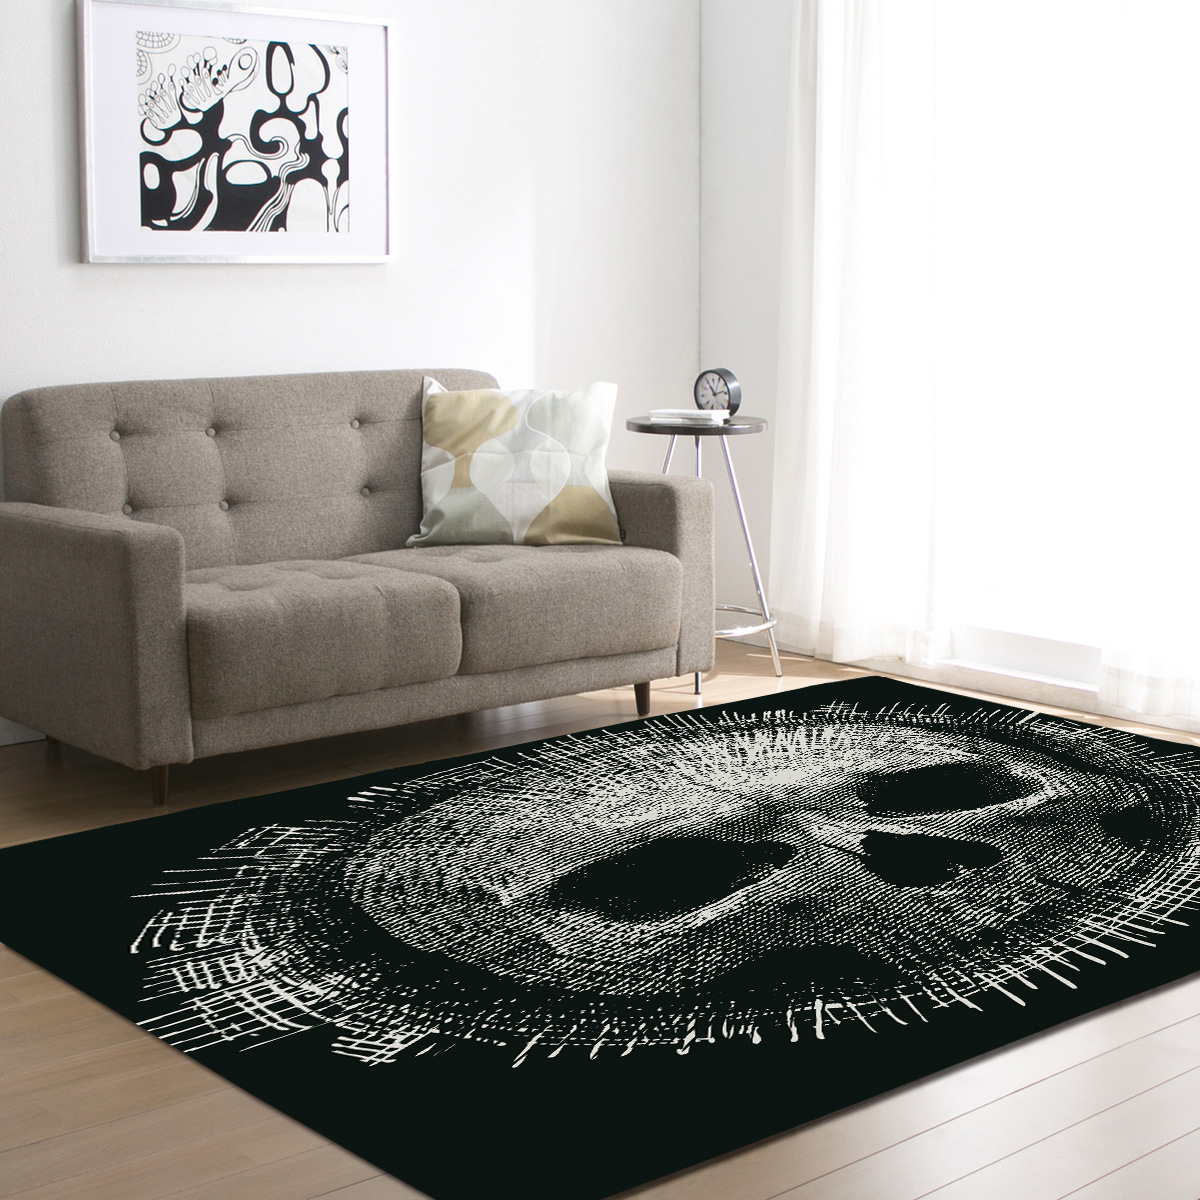 Skull Carpet Kids Room  Area Rug Area Rug For Living Room Living Room Rugs Carpet Bedroom Christmas Rug  Bedroom Rug  Floor Rug